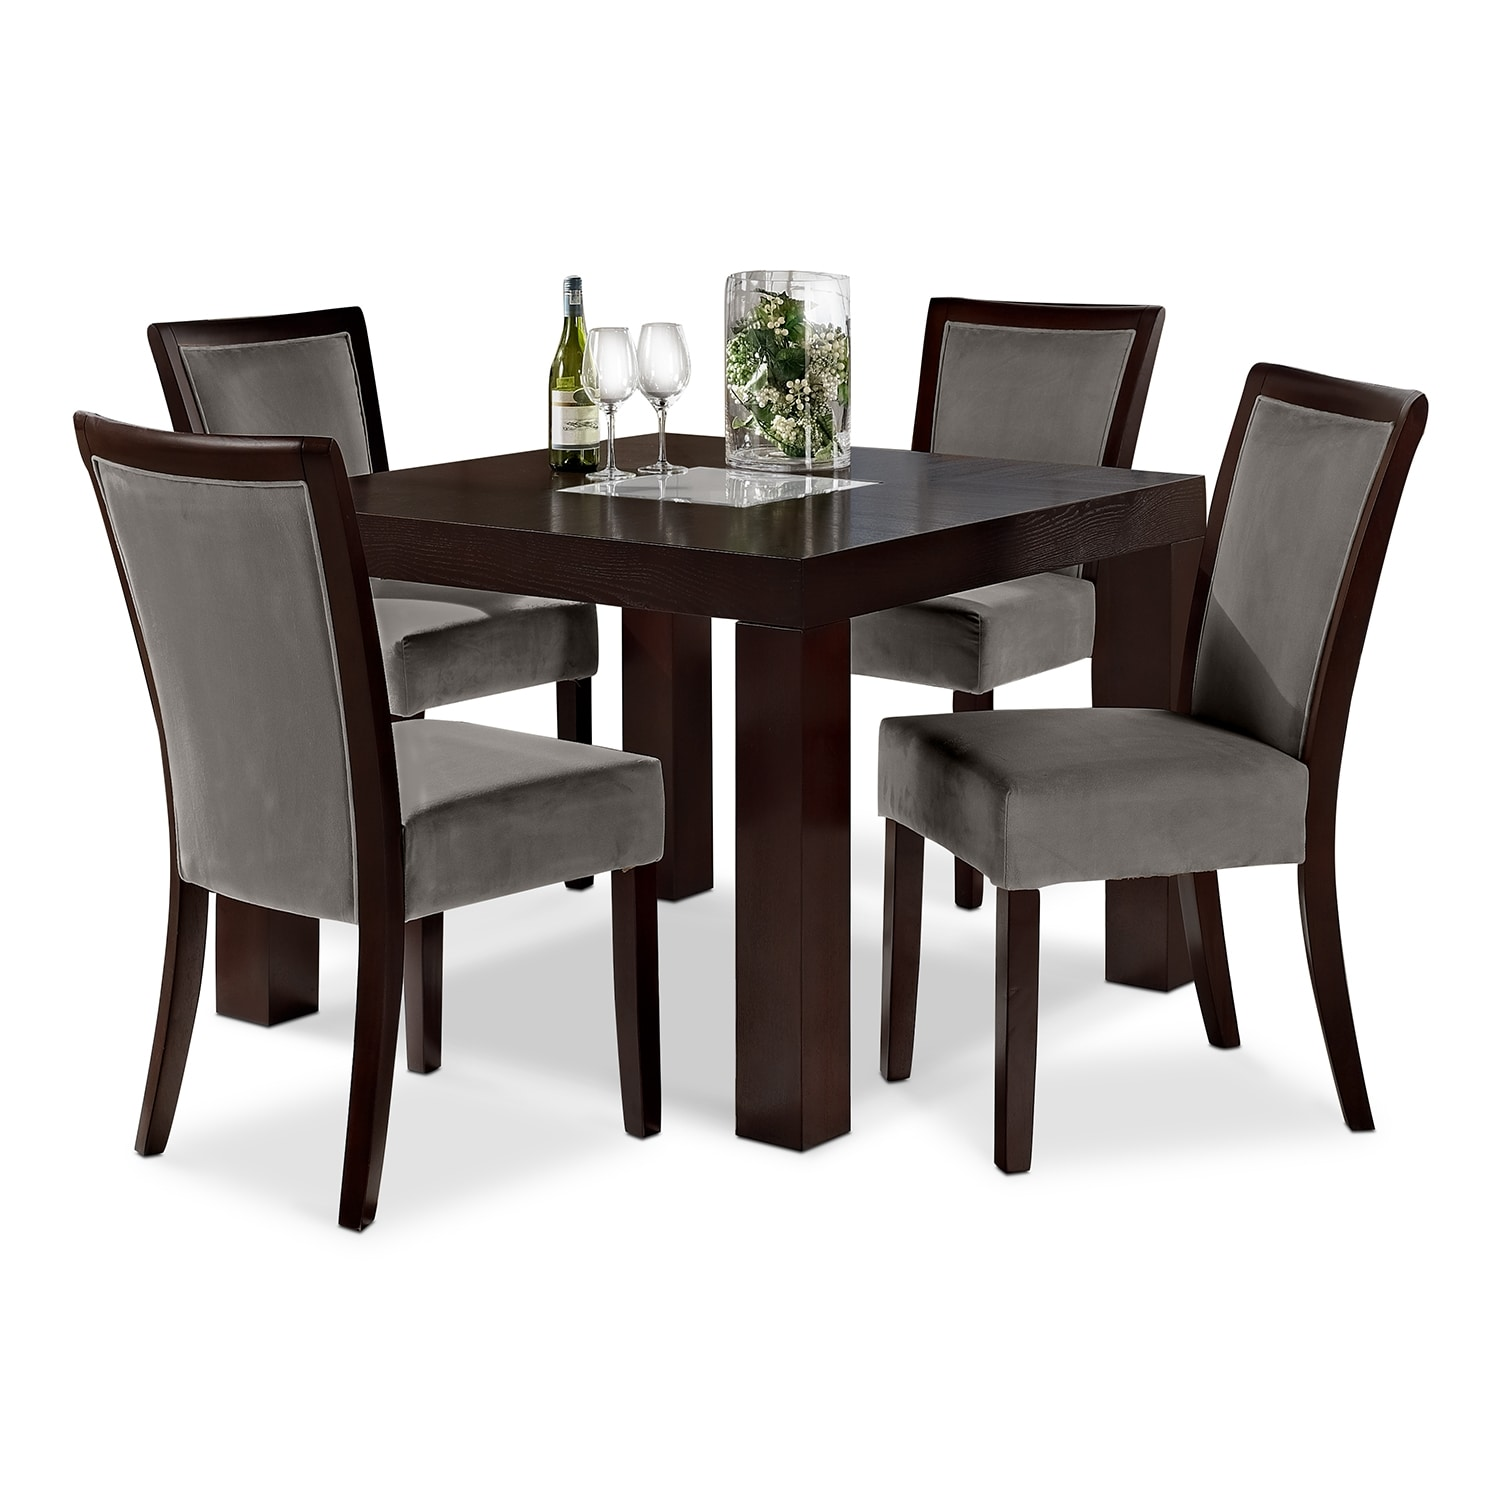 Tango gray dining room 5 pc dinette 42 table value for Breakfast room furniture